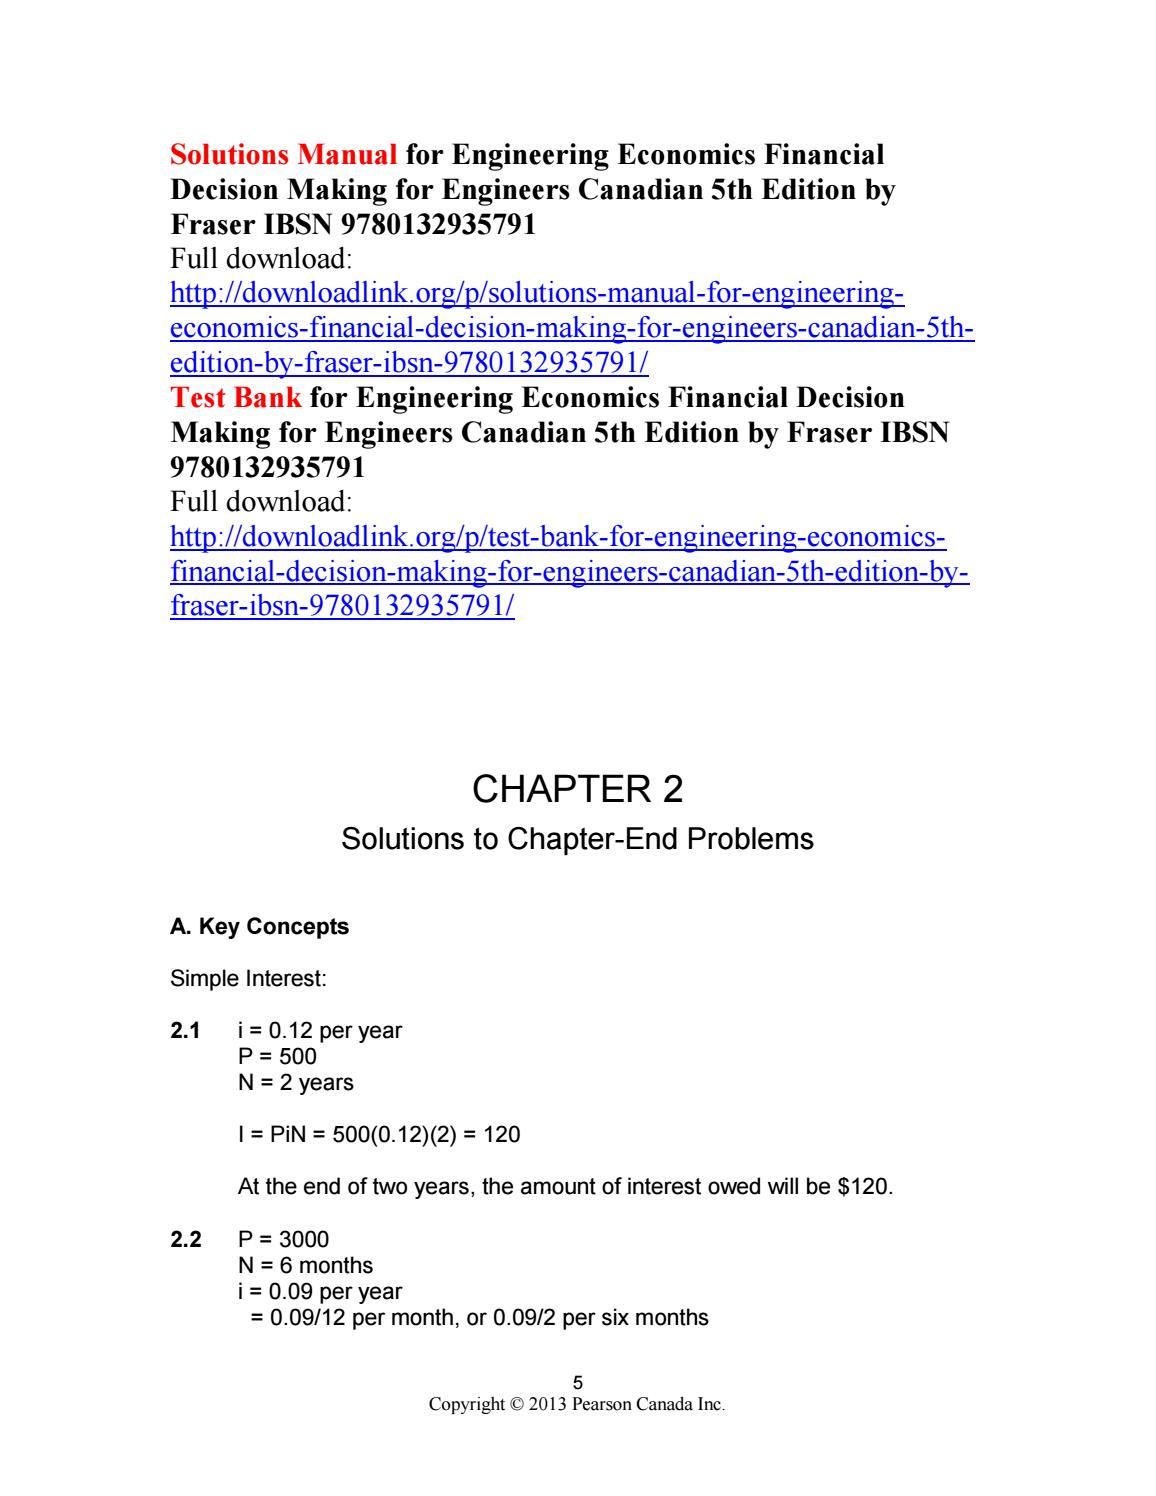 Solutions manual for engineering economics financial decision making for  engineers canadian 5th